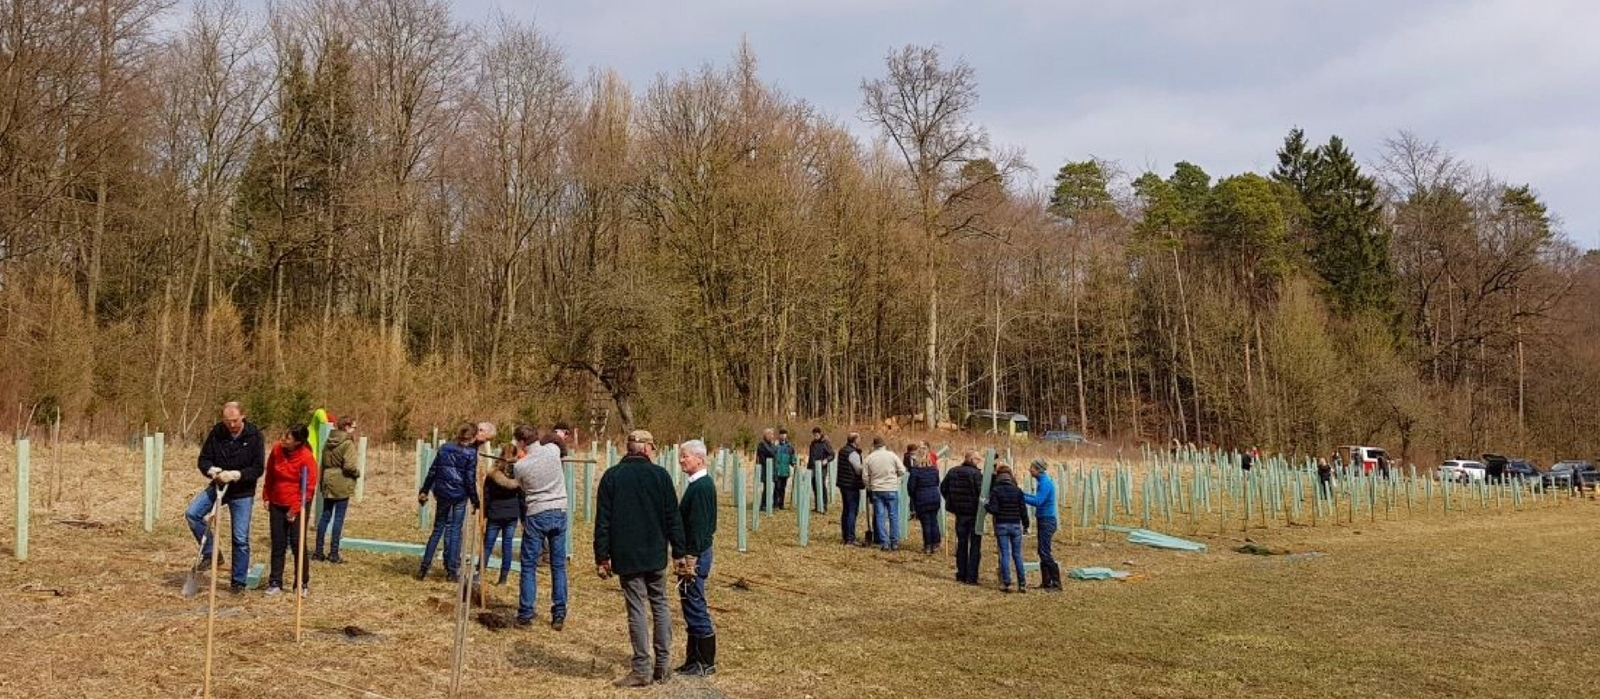 RC Forchheim, Baum, Bäume, Baumpflanzung, ERPOT, Every Rotarian Plants One Tree, Riseley